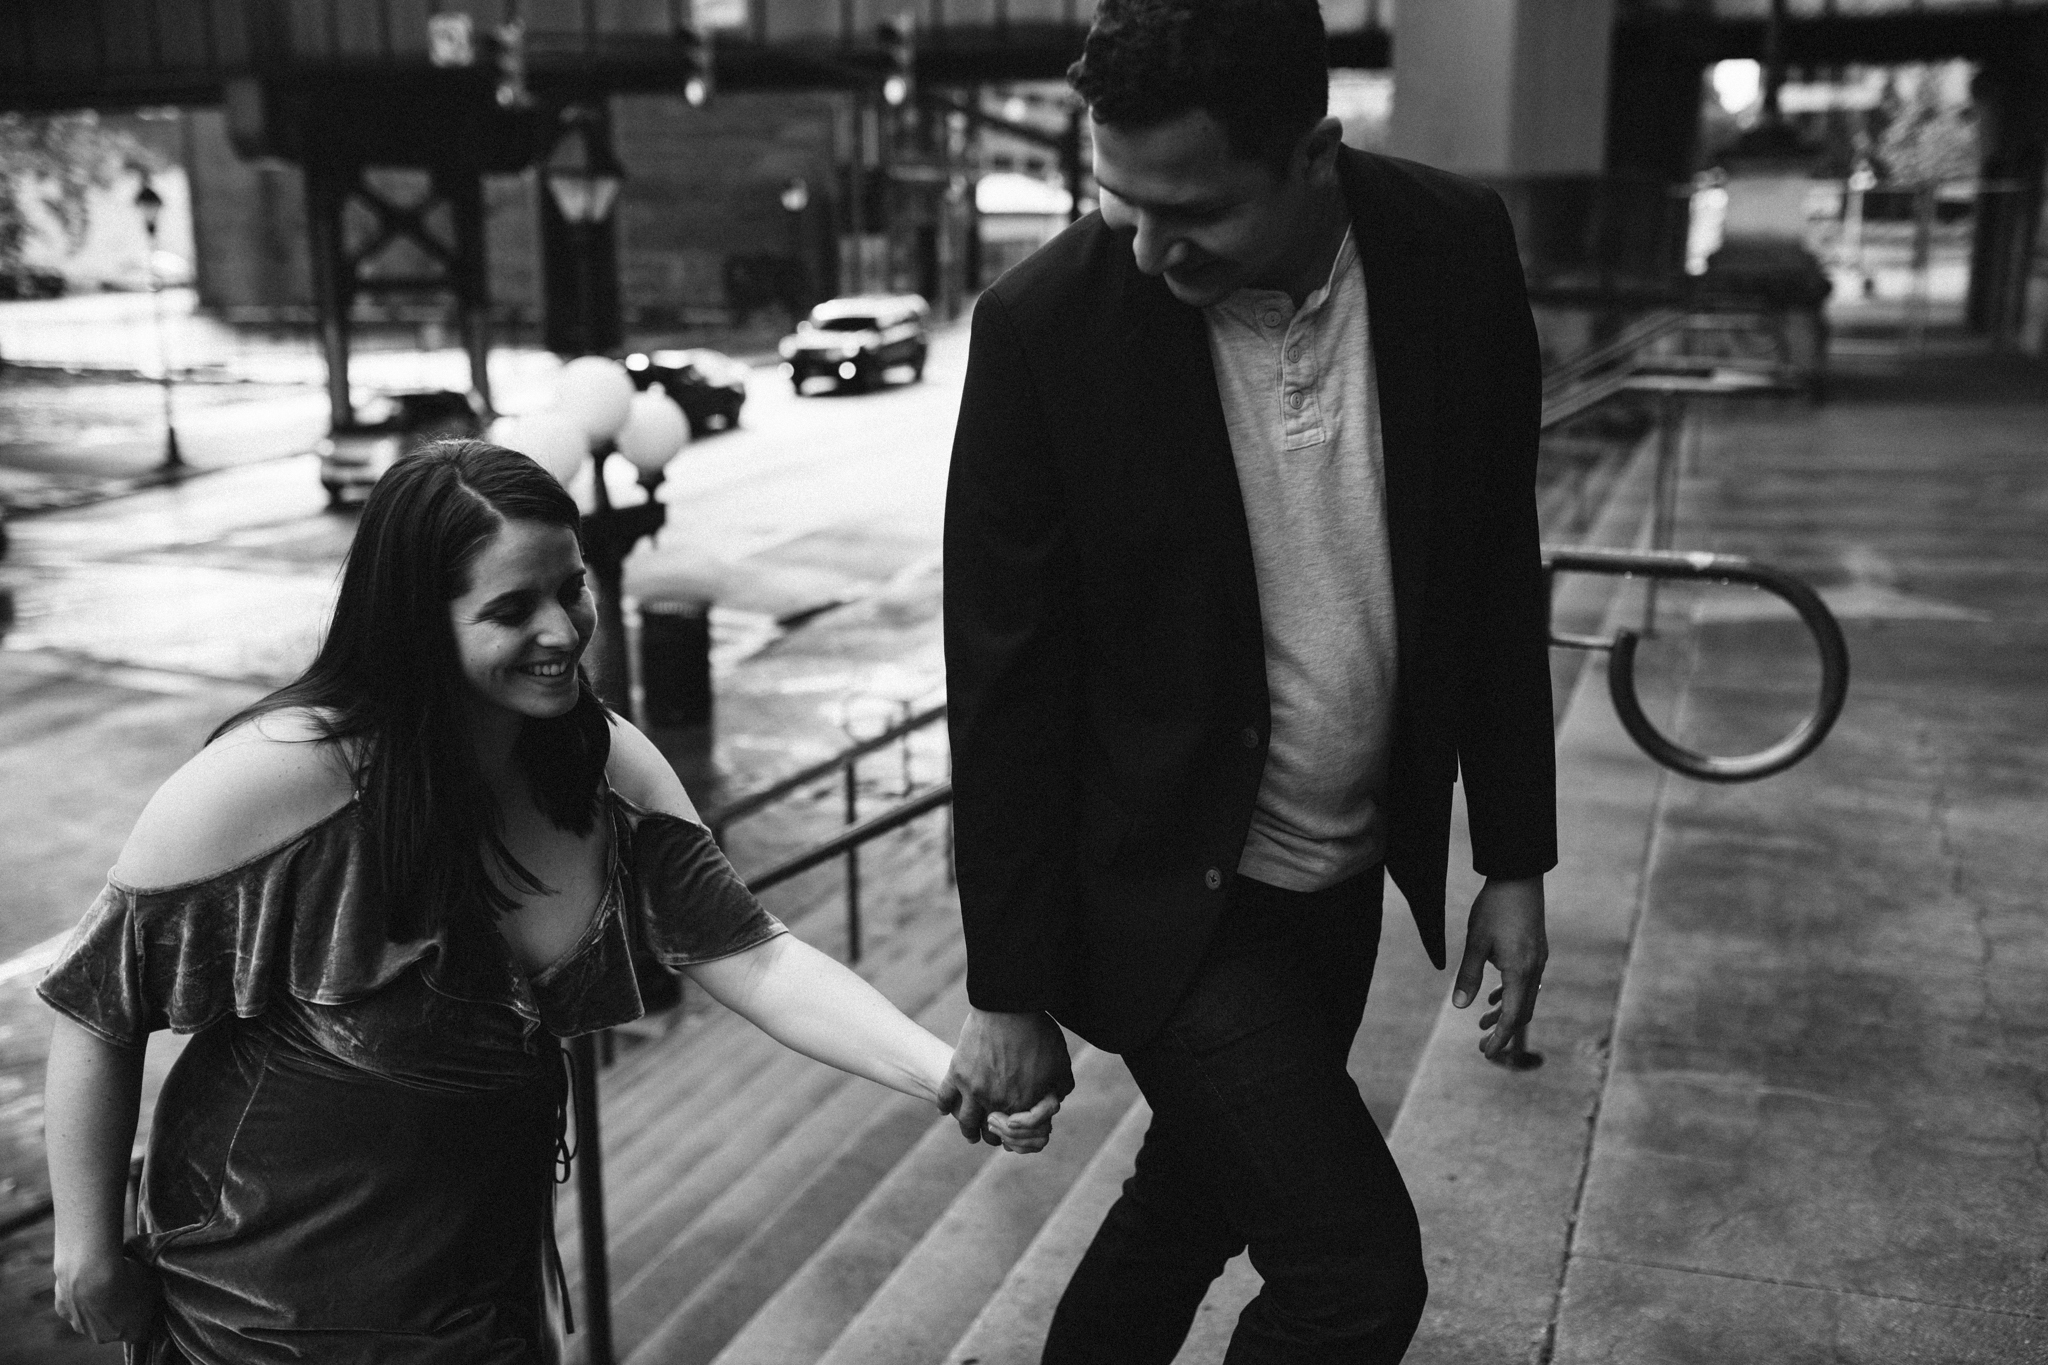 rachel_alex_richmond_engagement_session_mainstreetstation_rebeccaburtphotography-50.jpg